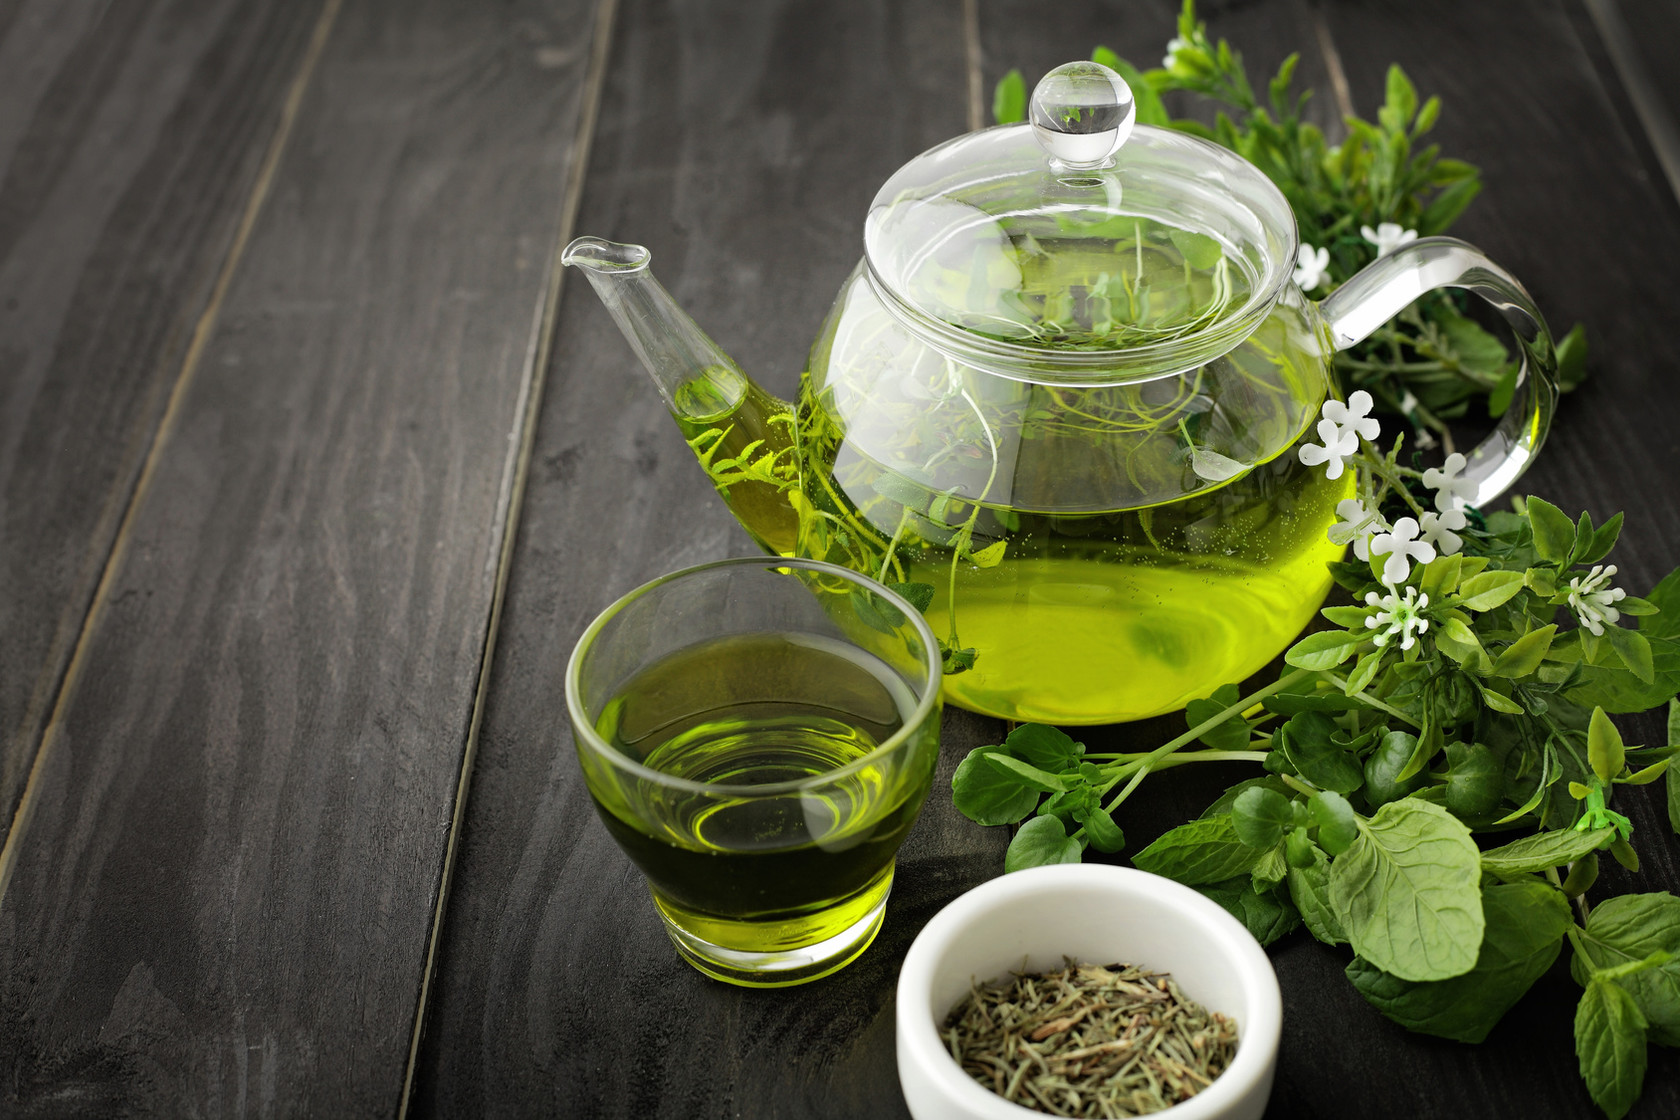 Green tea ingredient may ameliorate memory impairment ...